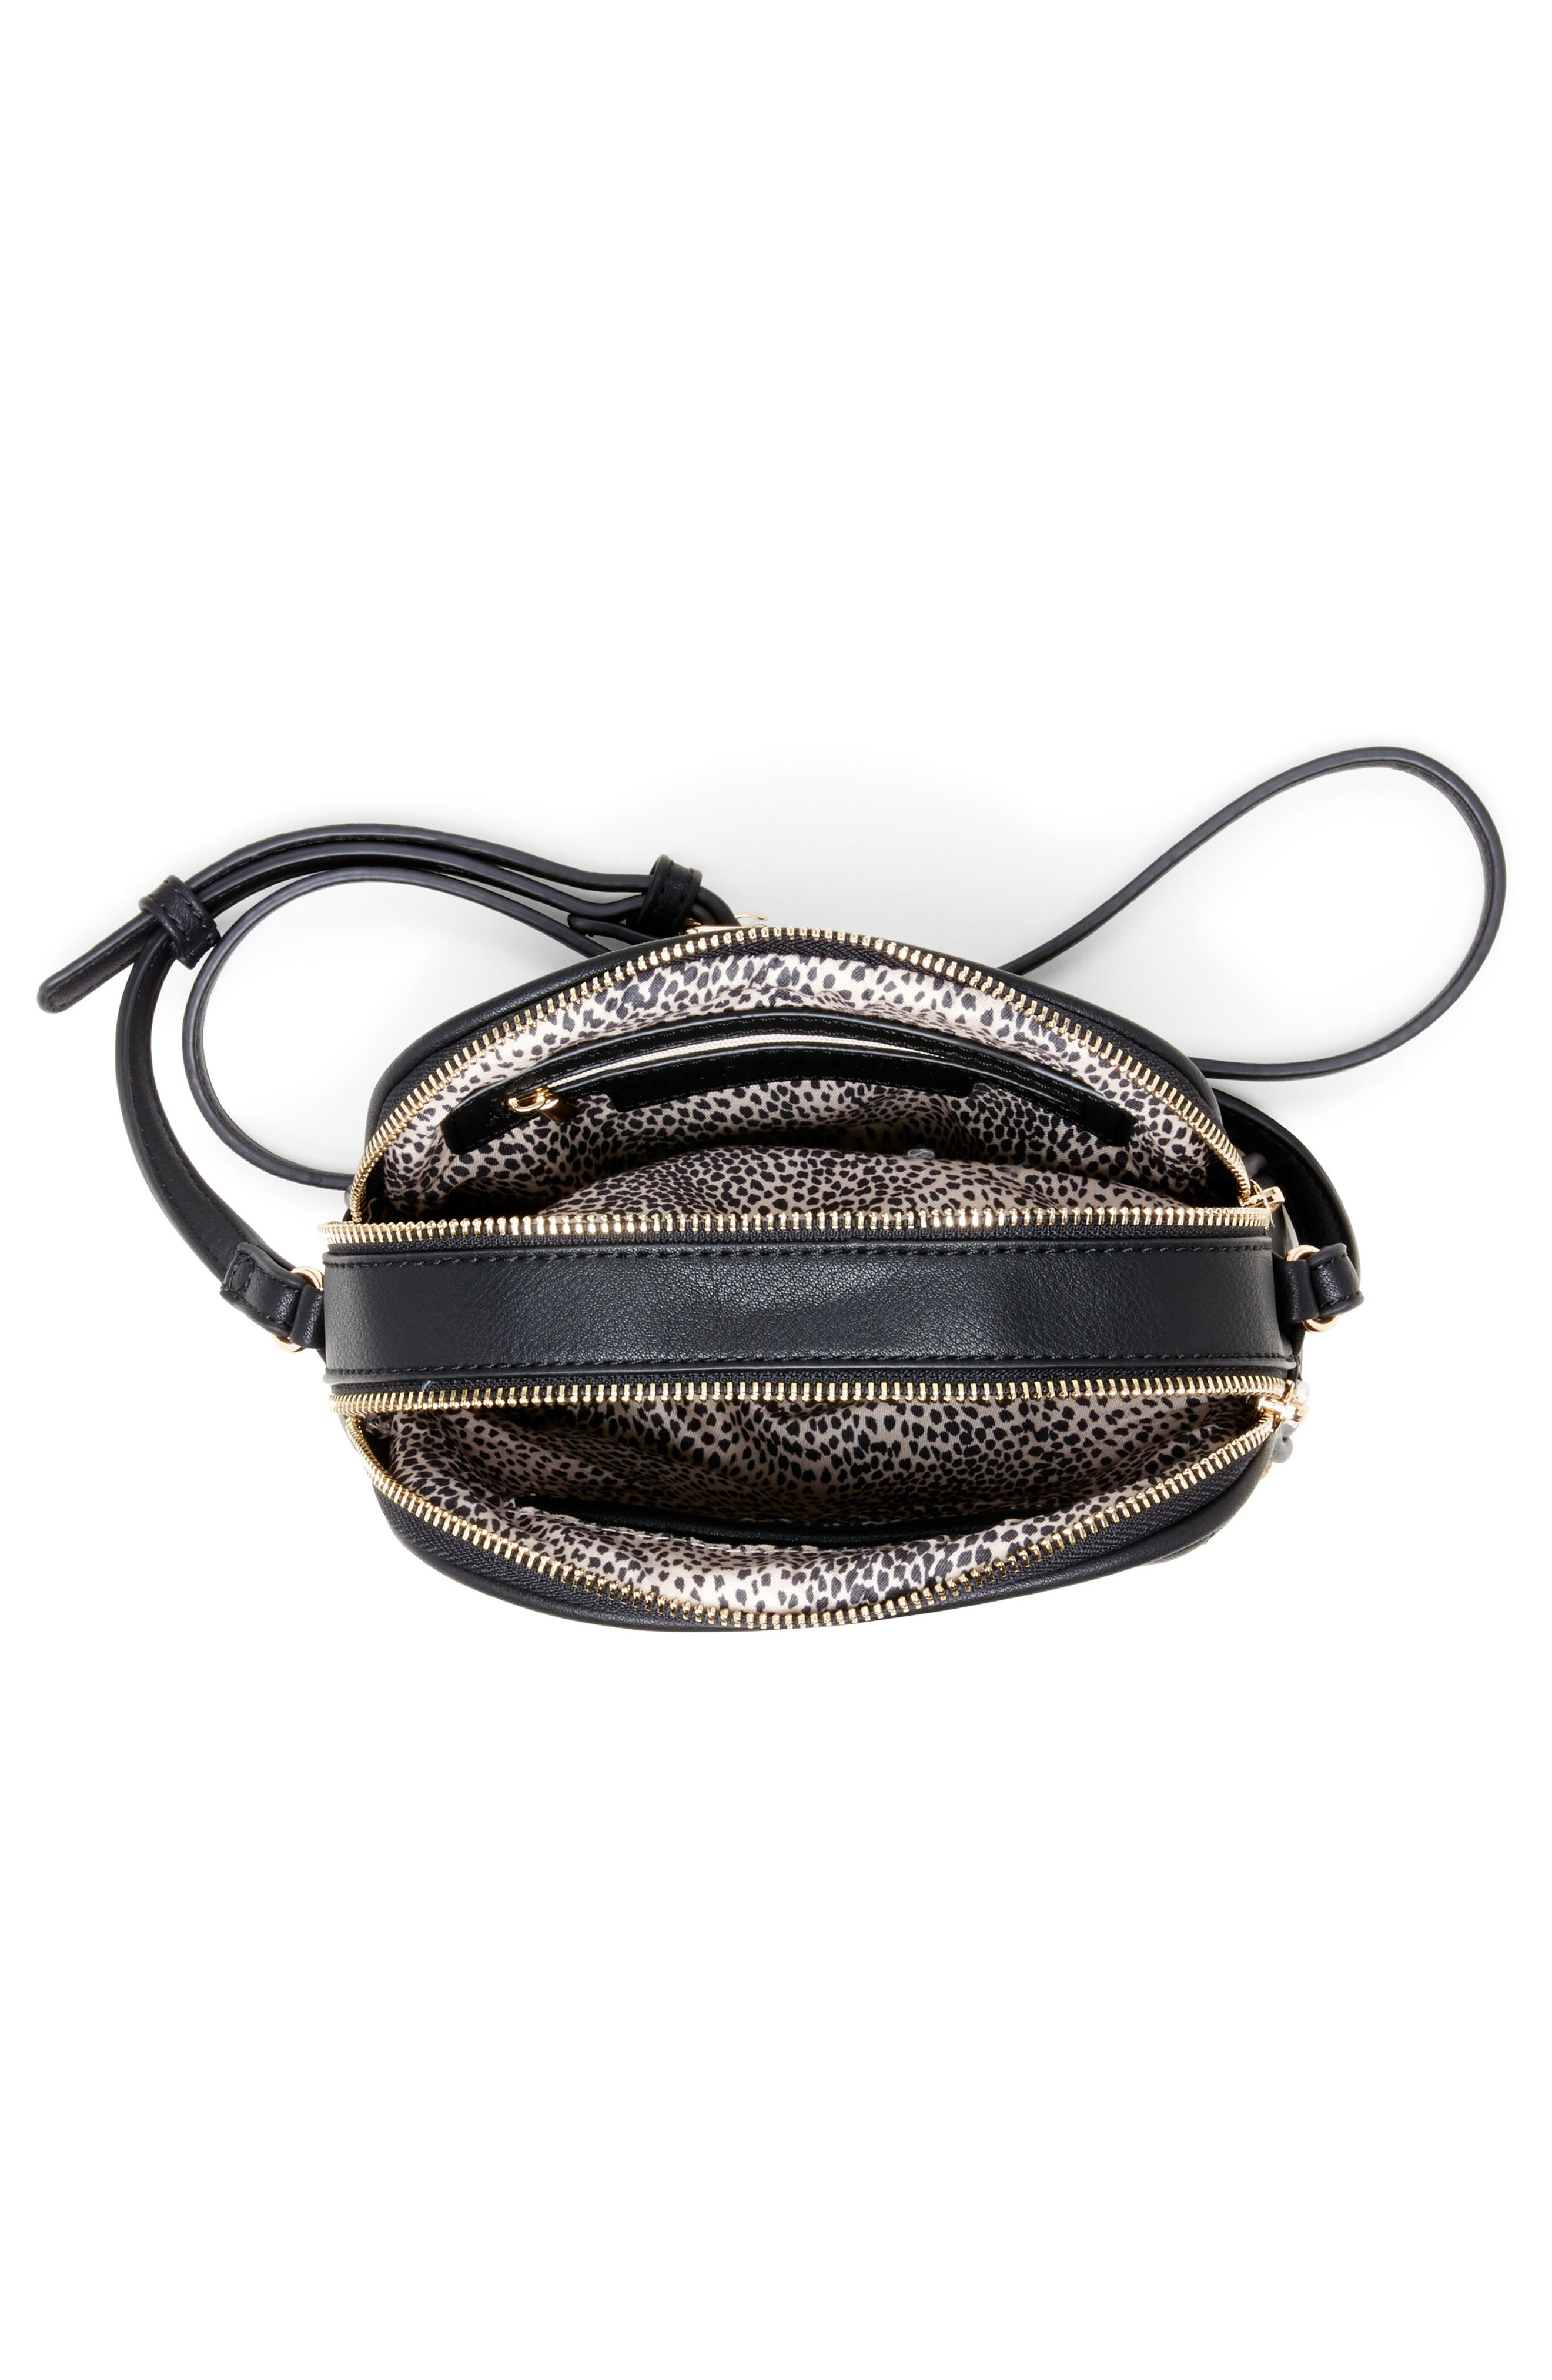 SOLE SOCIETY, Linza Faux Leather Crossbody Bag, Alternate thumbnail 3, color, BLACK/ CREAM